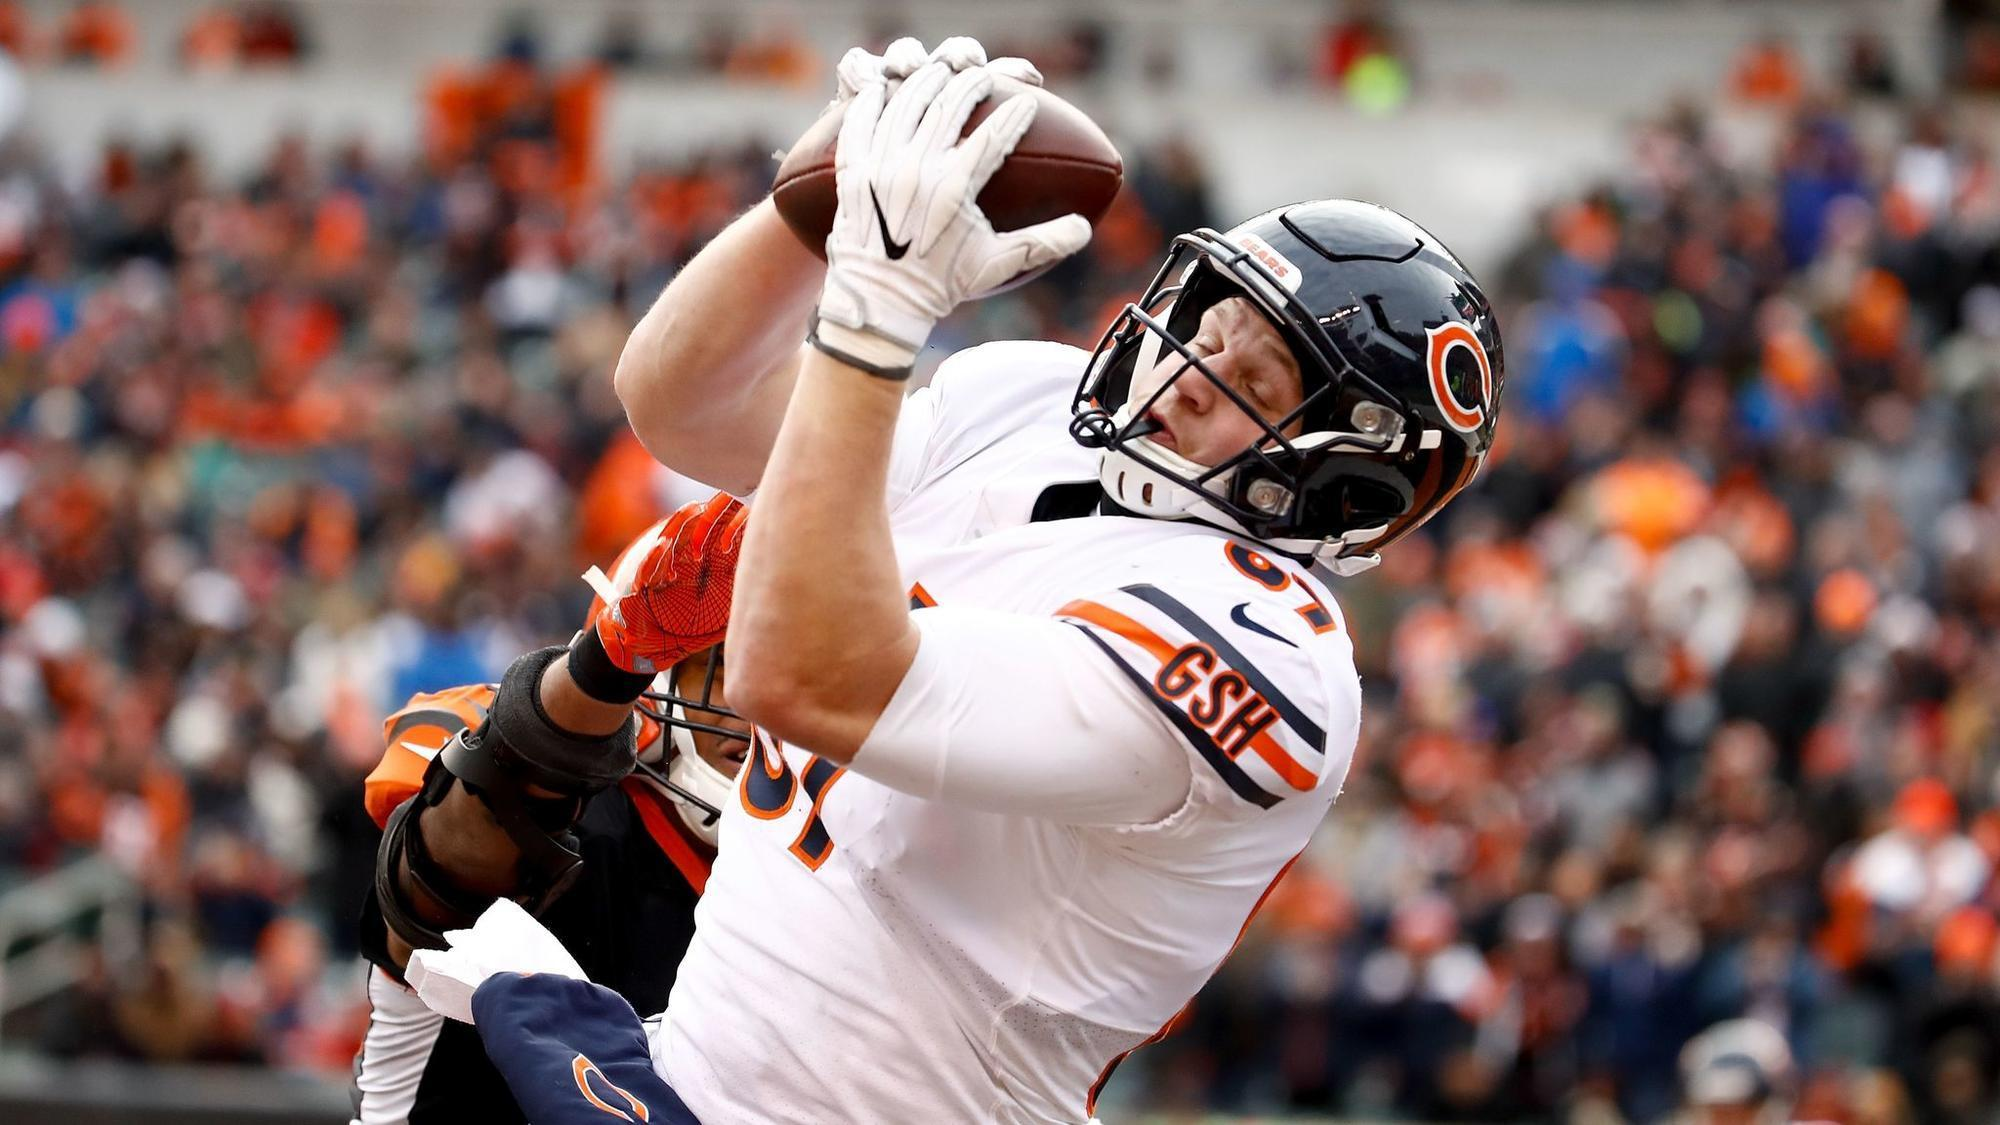 Ct-spt-bears-tight-ends-season-review-20180209